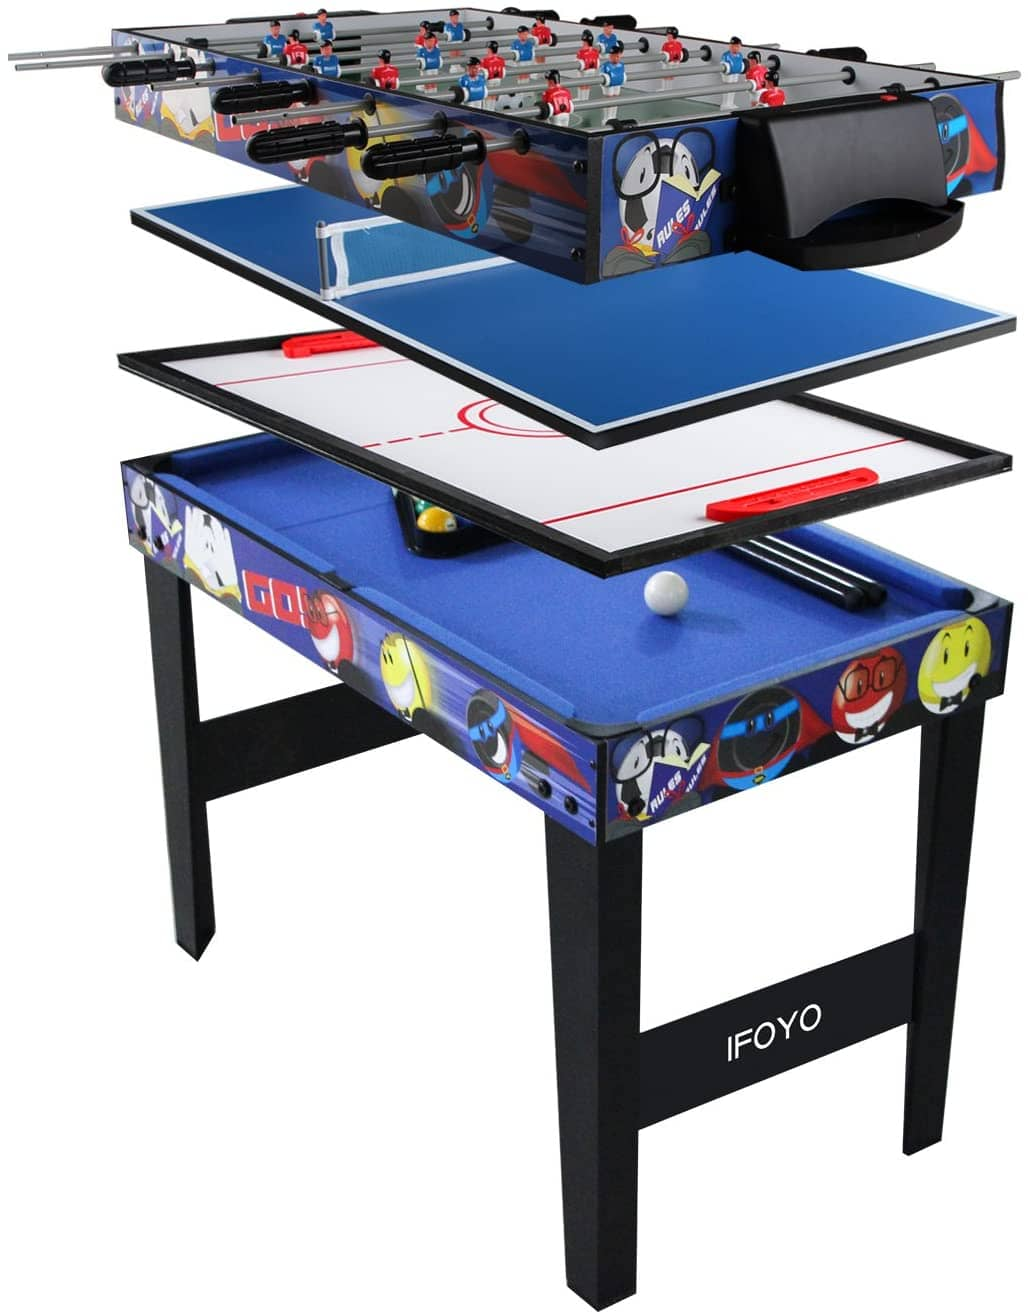 IFOYO Multi-Function 4 In 1 Steady Combo Game Table